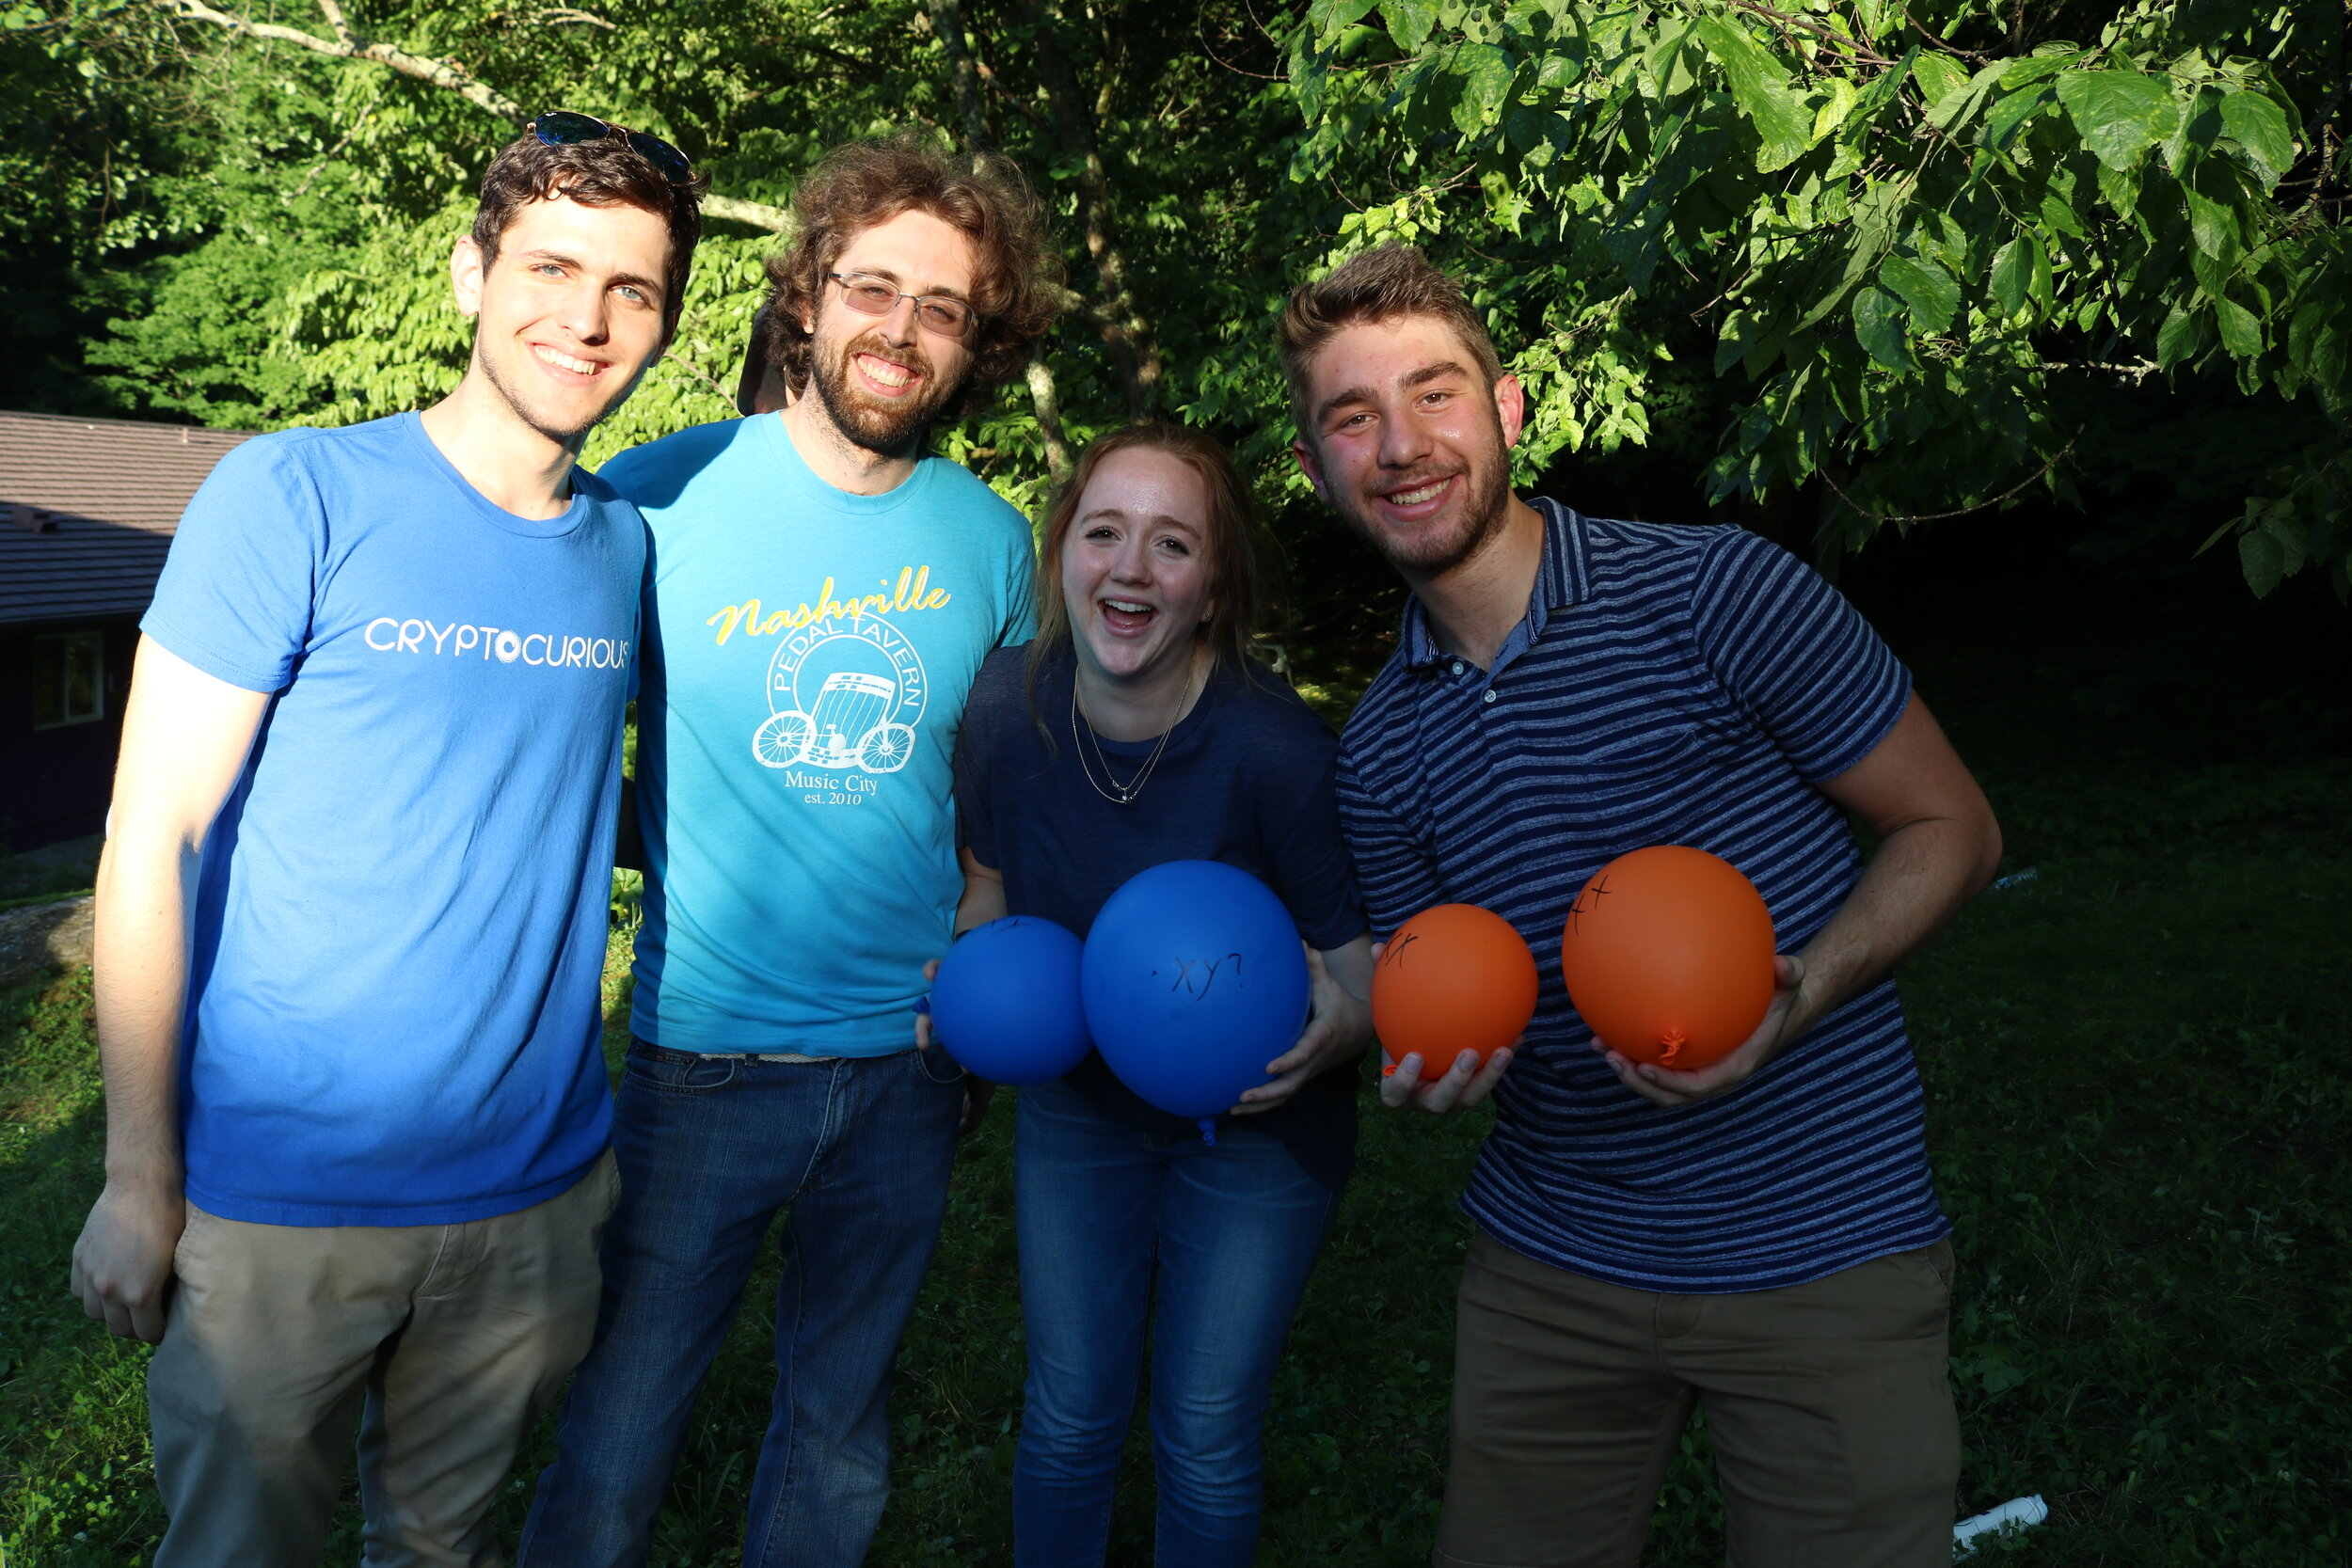 House competition games at our 2018 summer launch party!